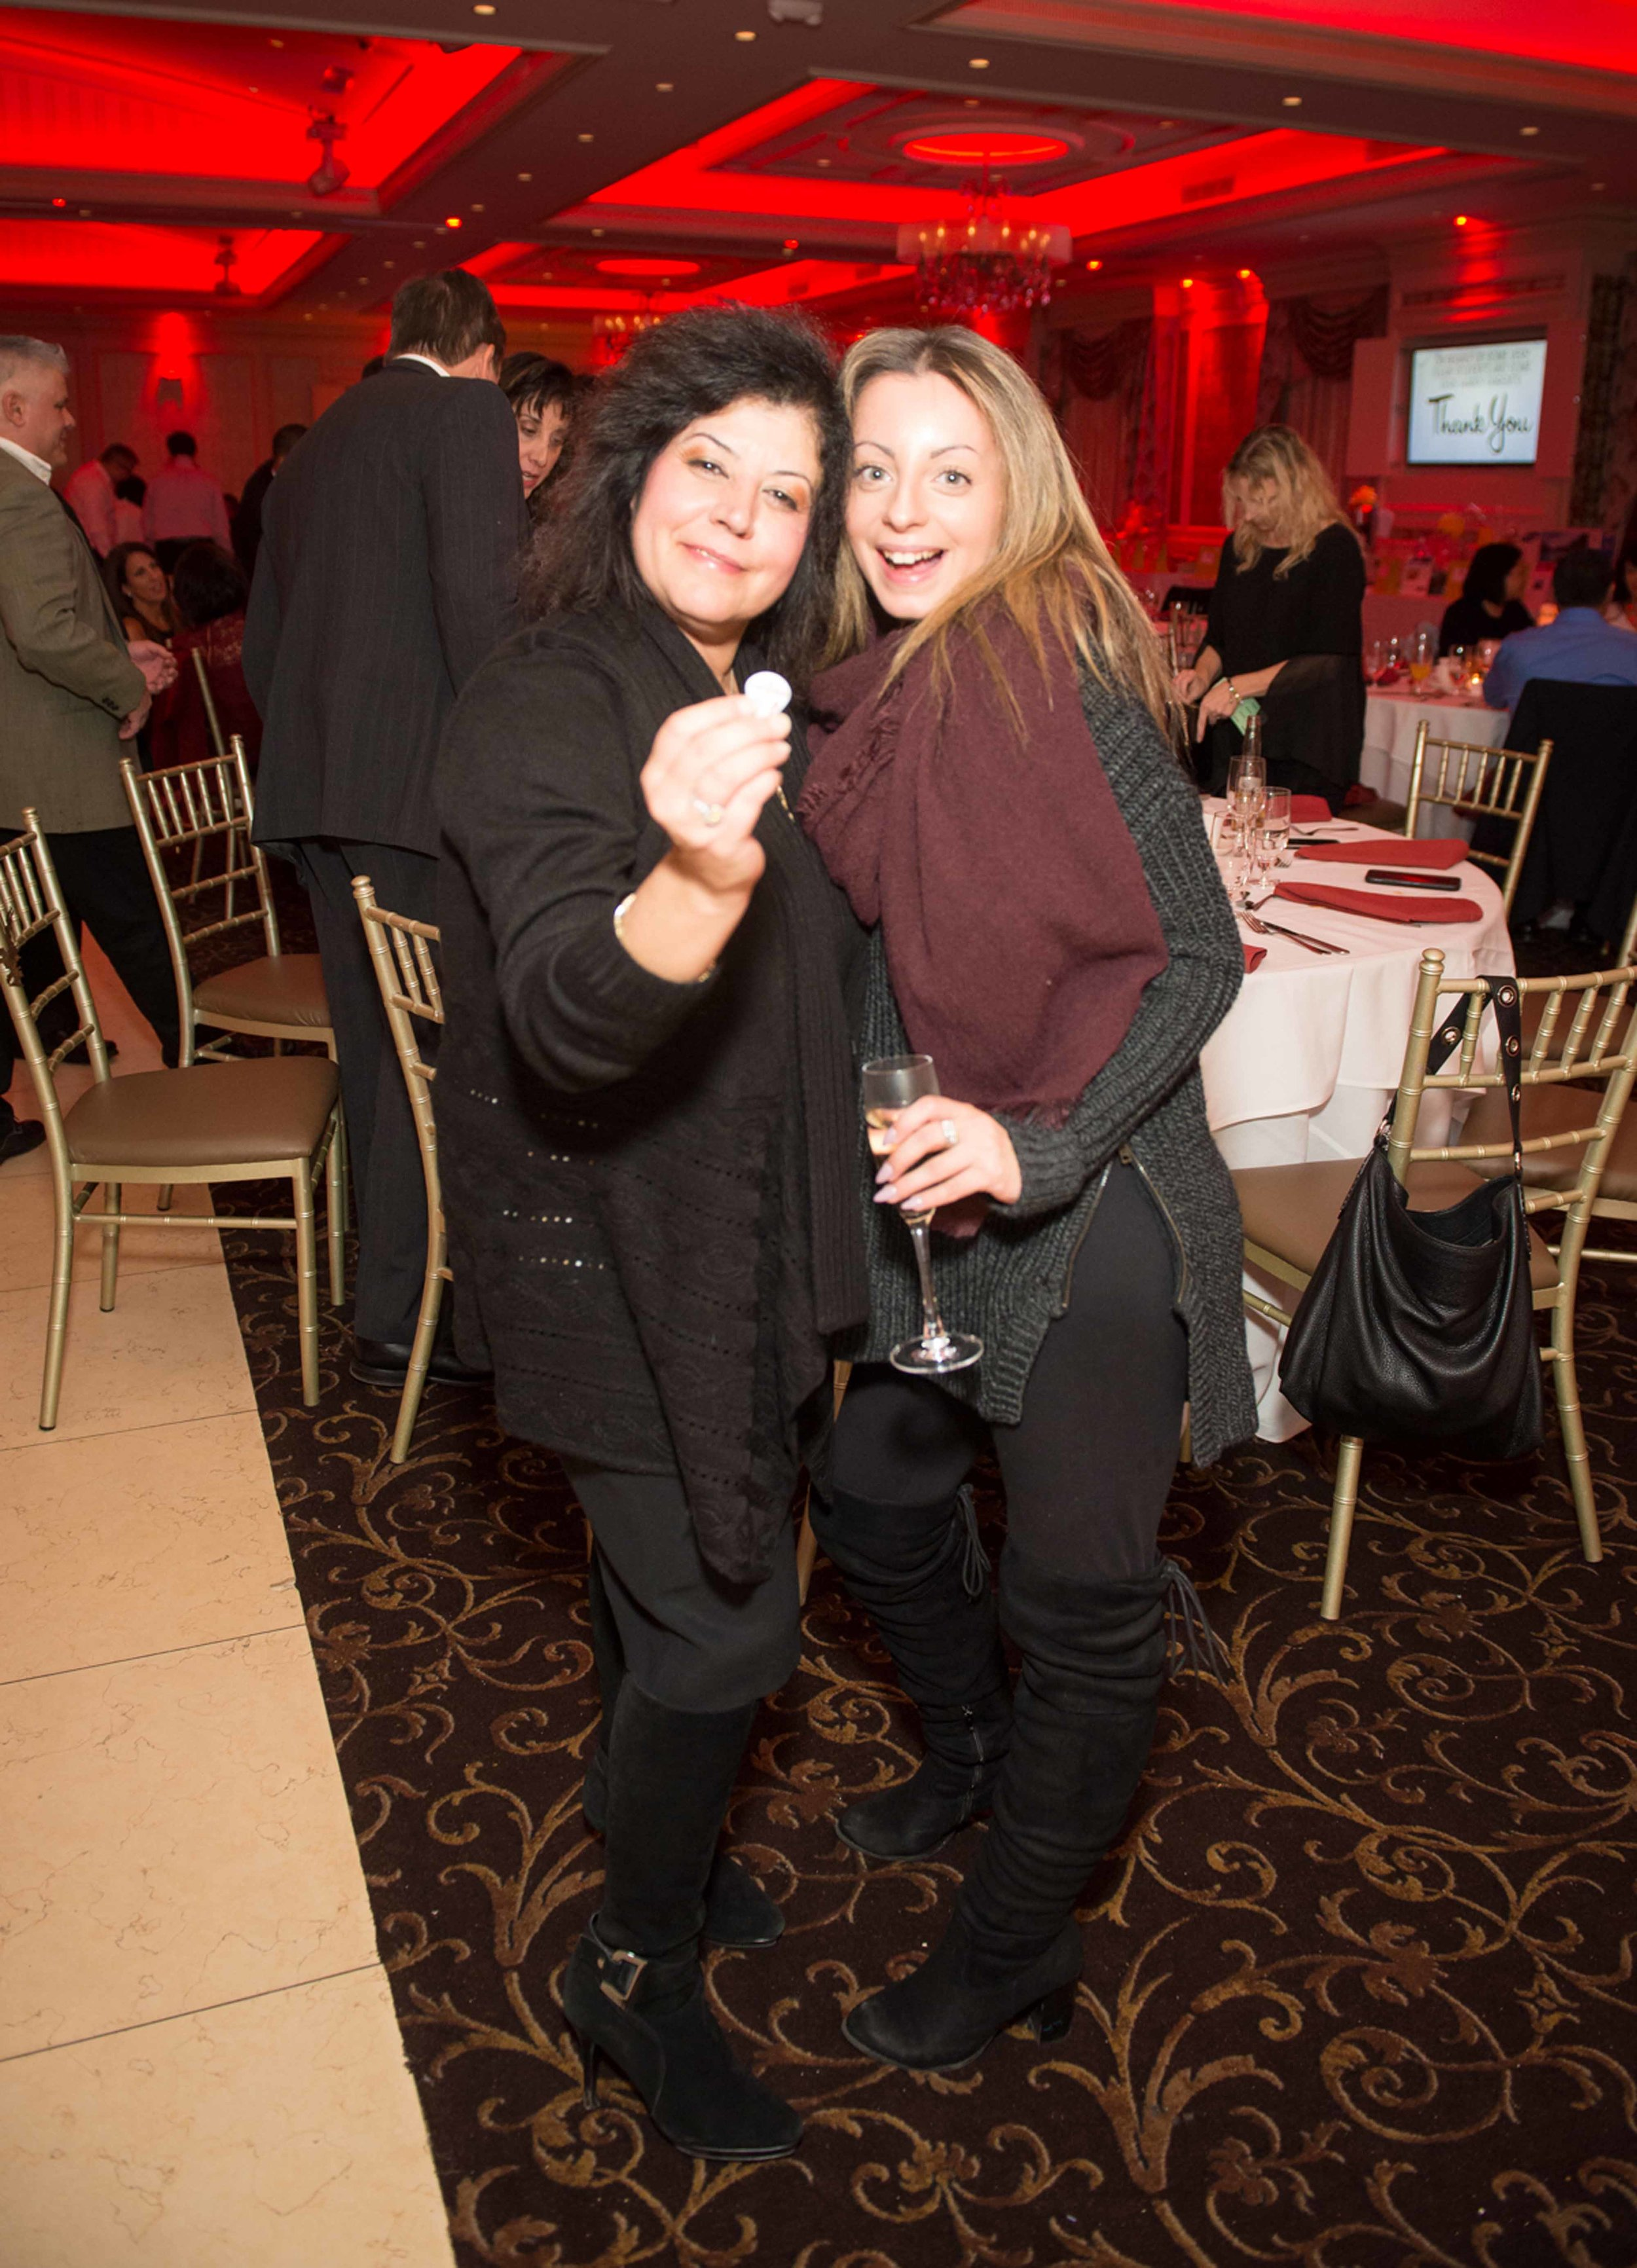 2017-11-10 The EPIC School - Party with a Purpose - Biagios on the Terrace - Paramus NJ-198.jpg